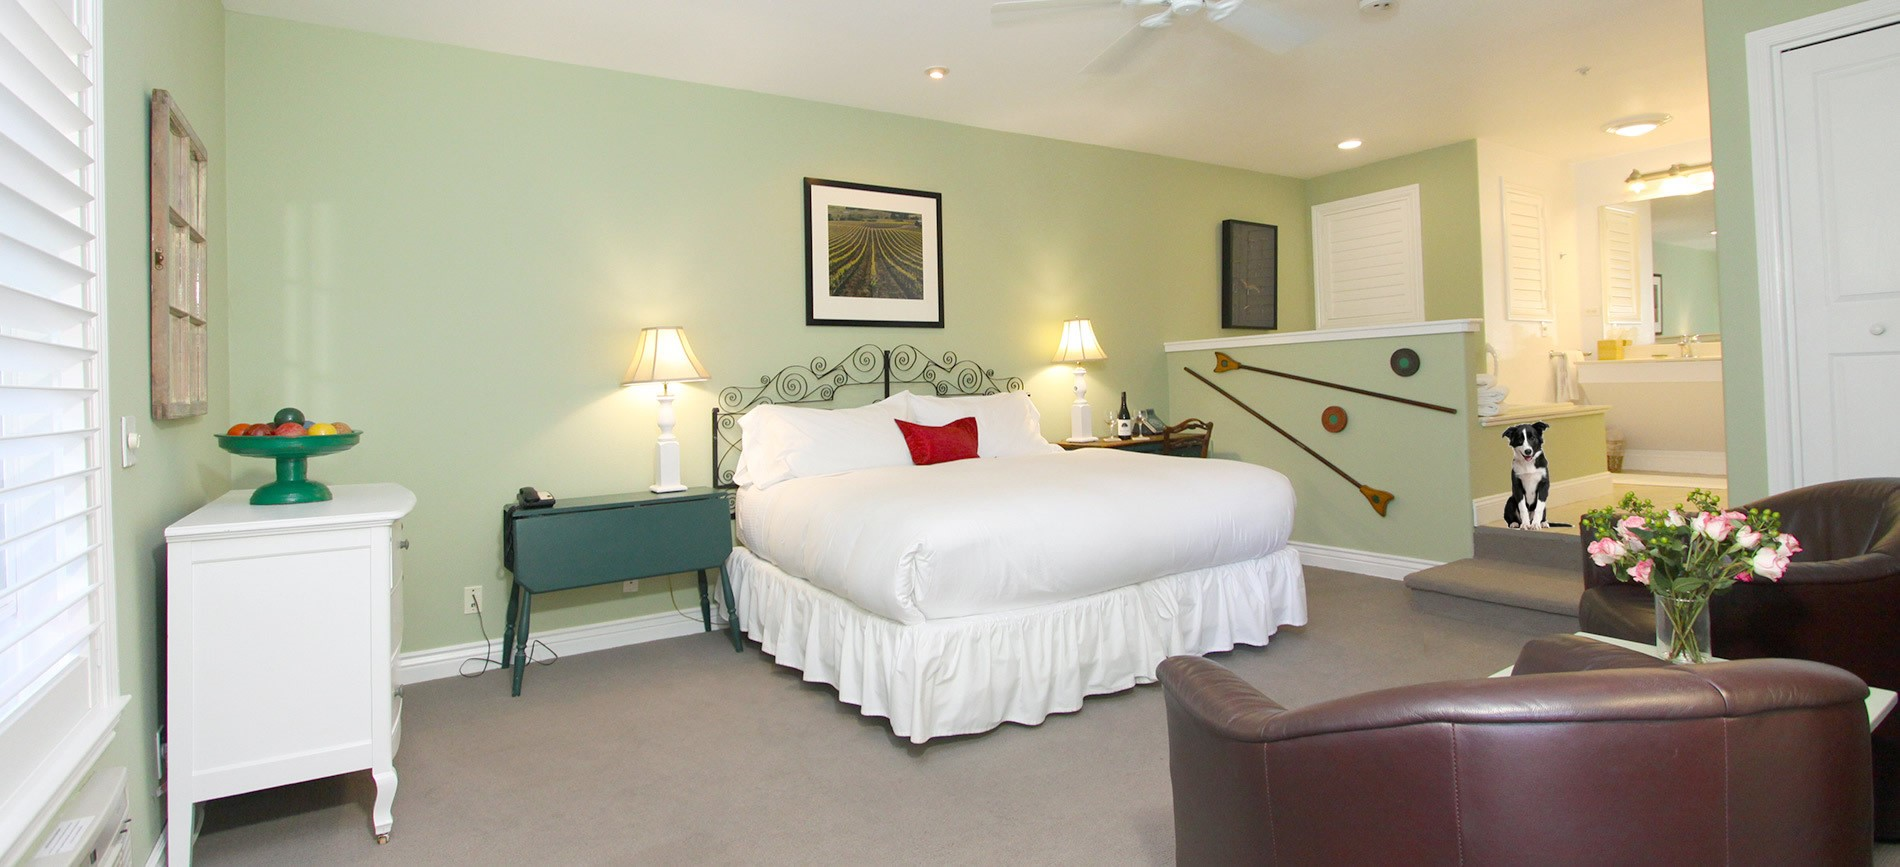 pet friendly guest room with bed, chairs and dog